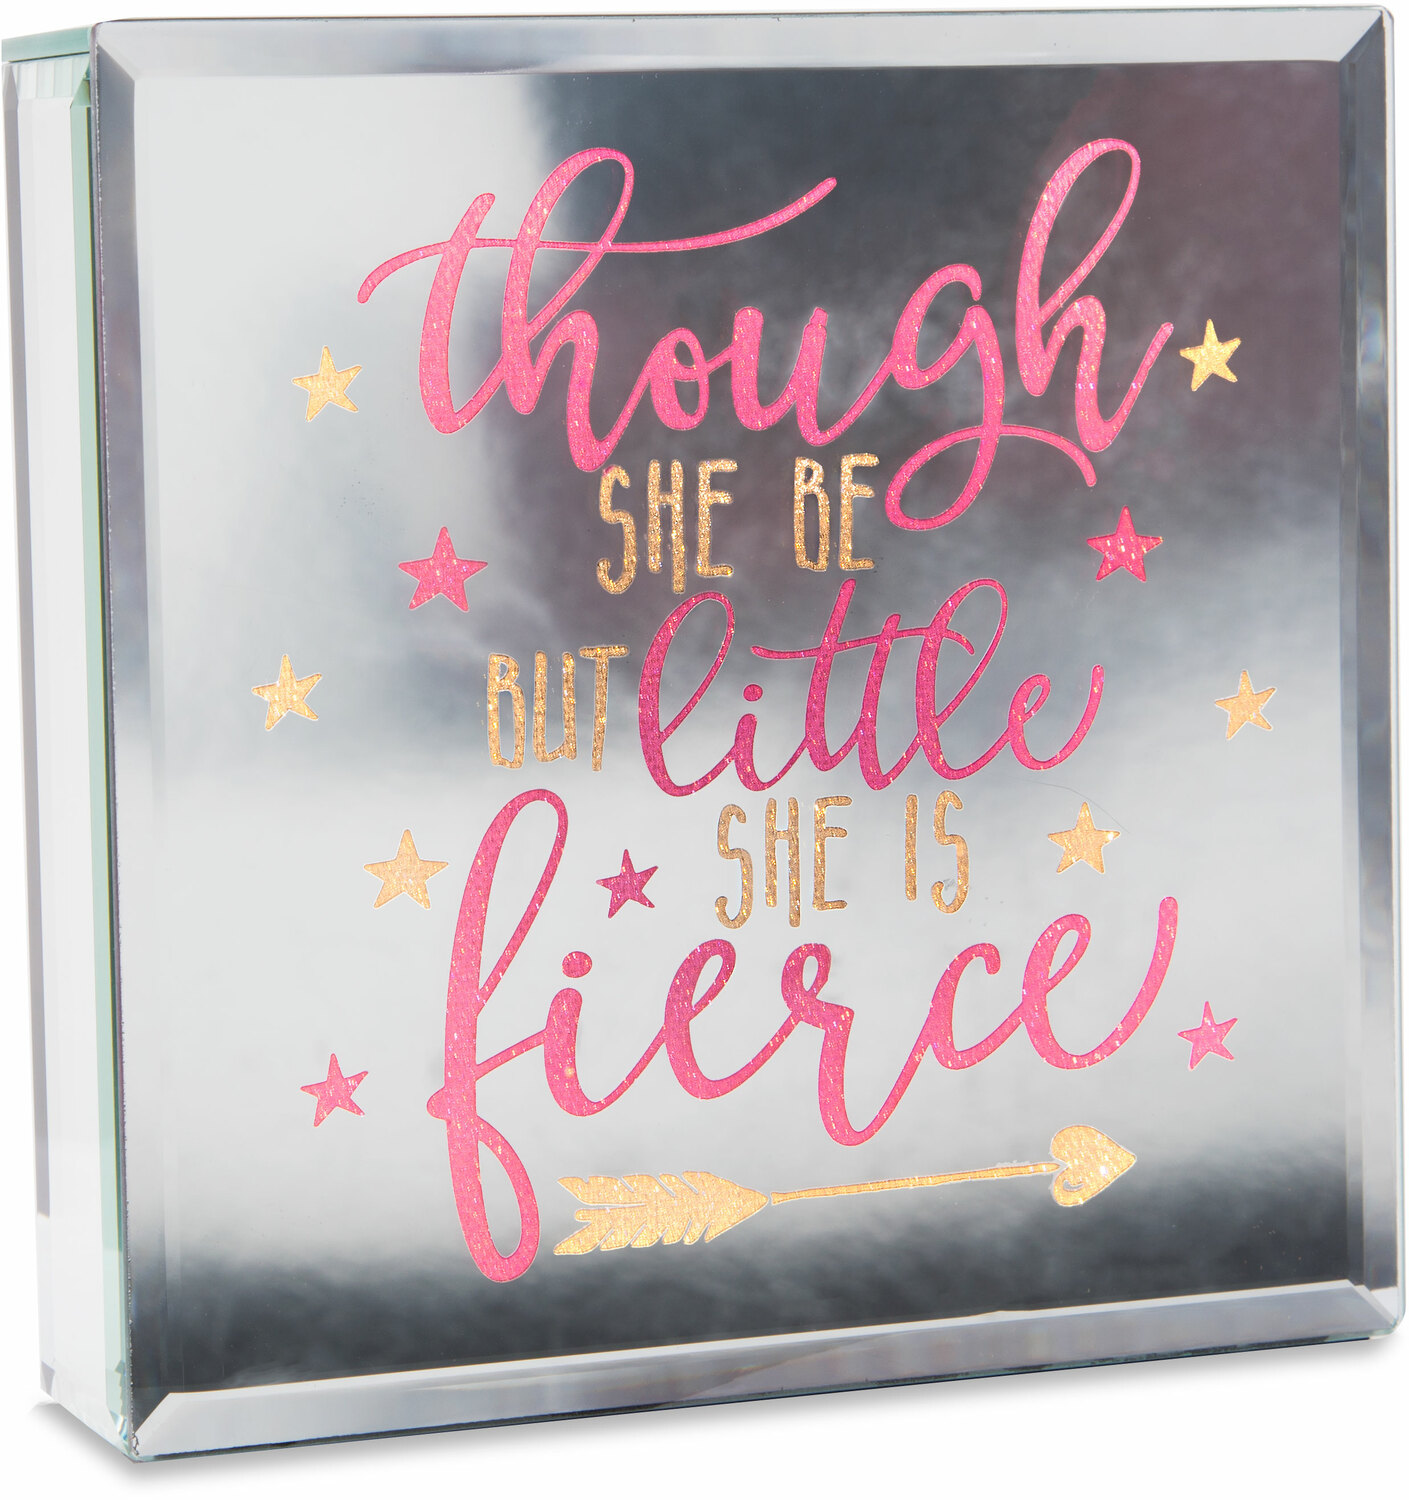 "Fierce by Reflections of You - Fierce - 6"" Lit-Mirrored Plaque"